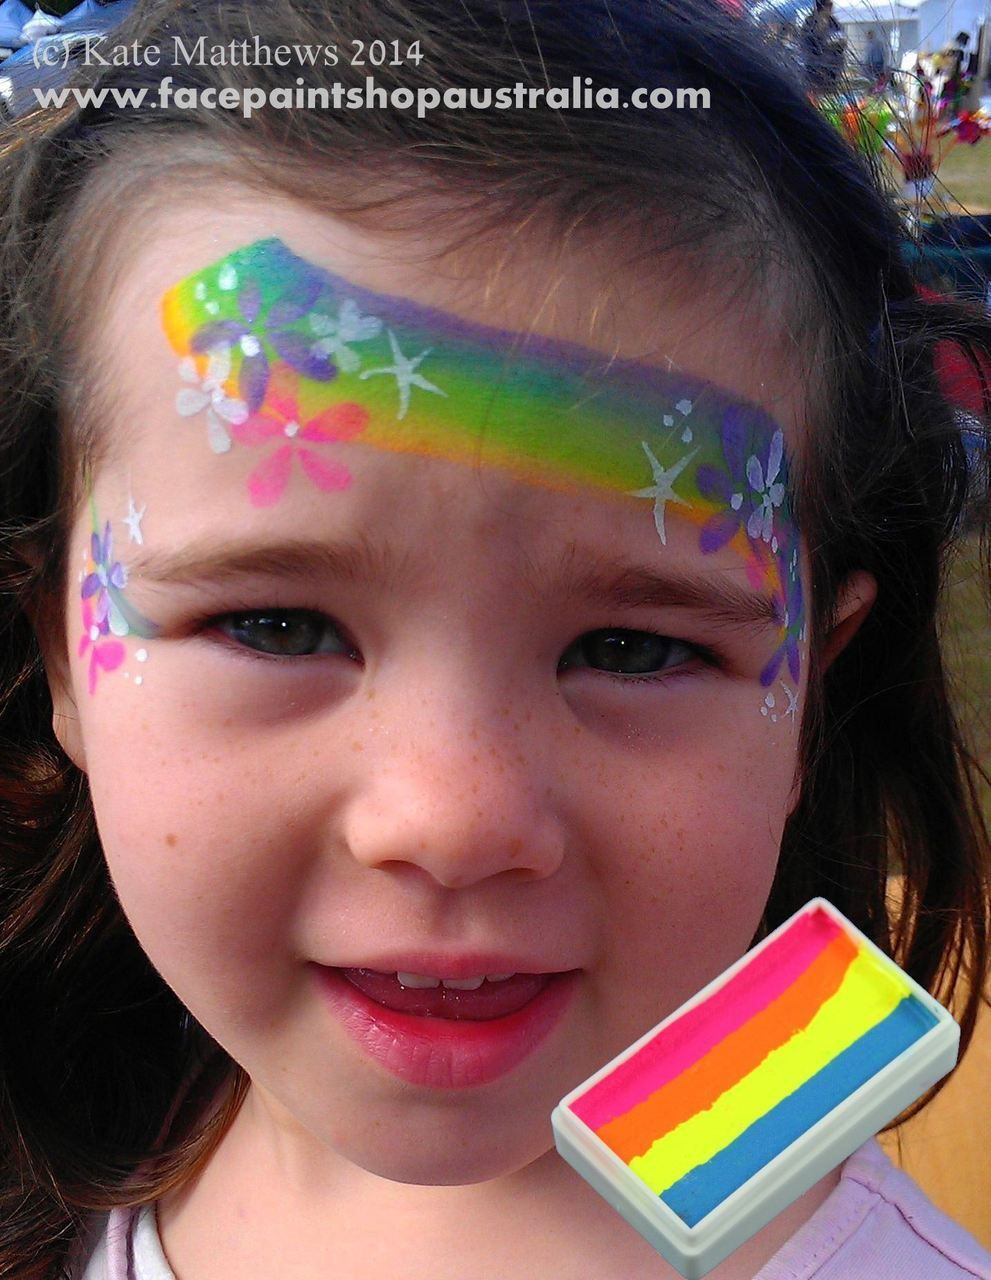 Fast rainbow face painting for girls with flowers using TAG neon cocktail